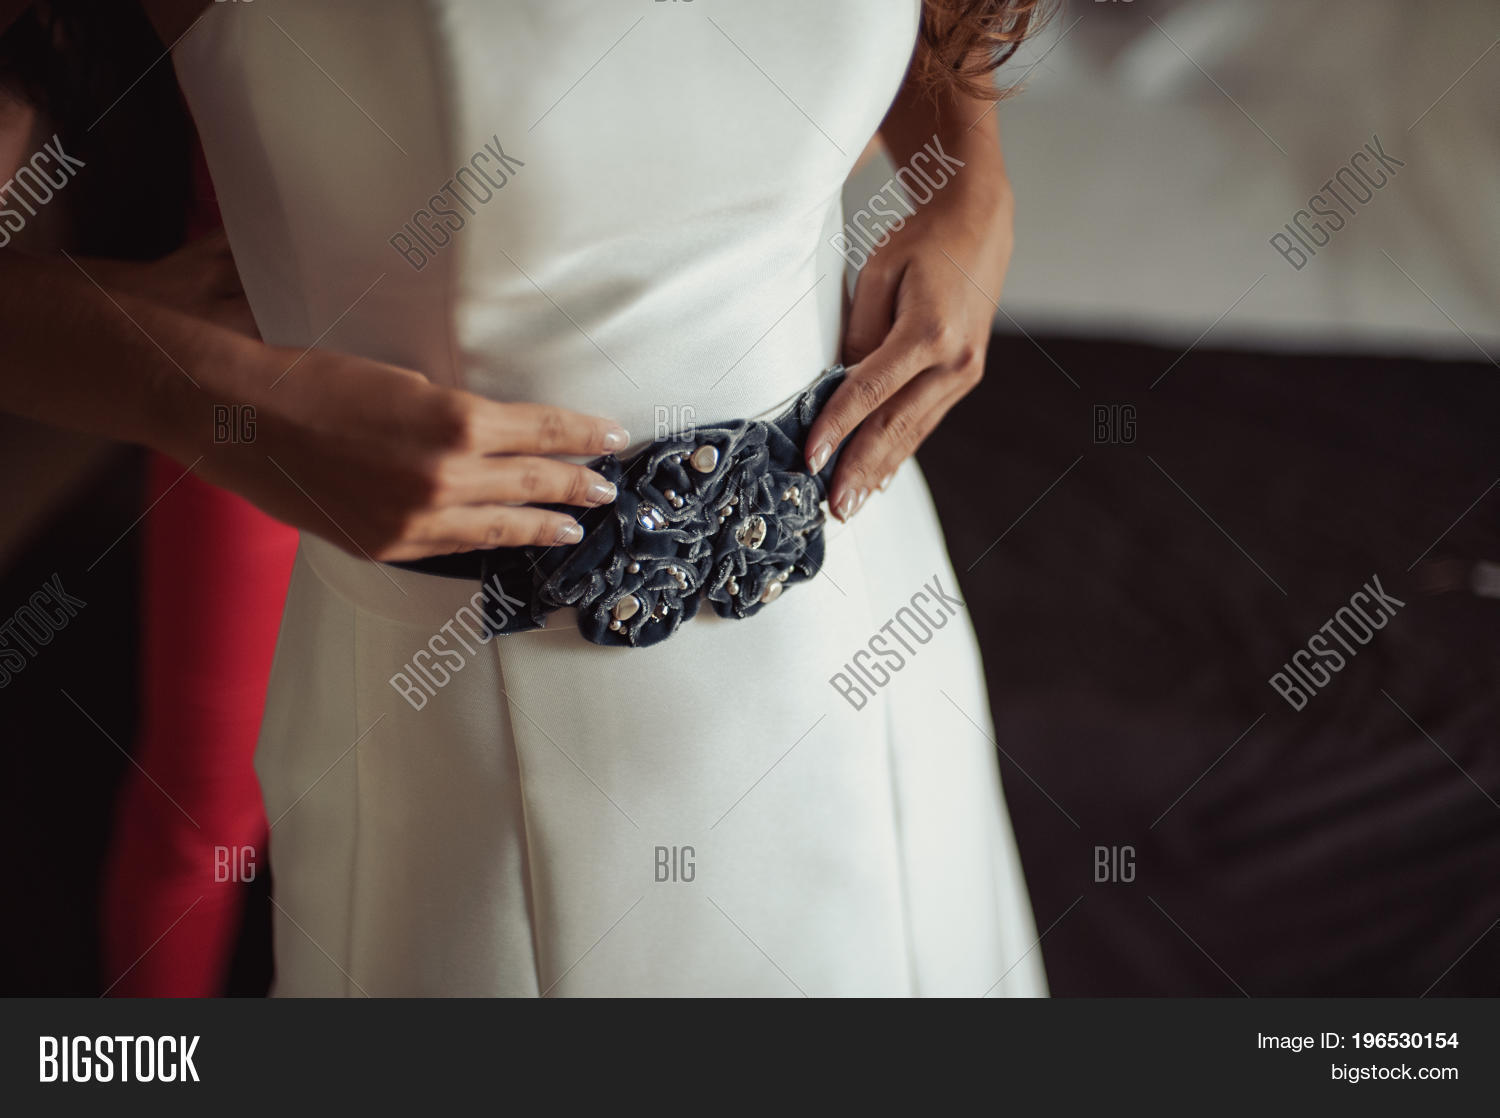 1703d015708e Fashionable Bridesmaids Dresses Helped Wear Bow On Back Of Wedding Dress  Bride. Morning Wedding Day